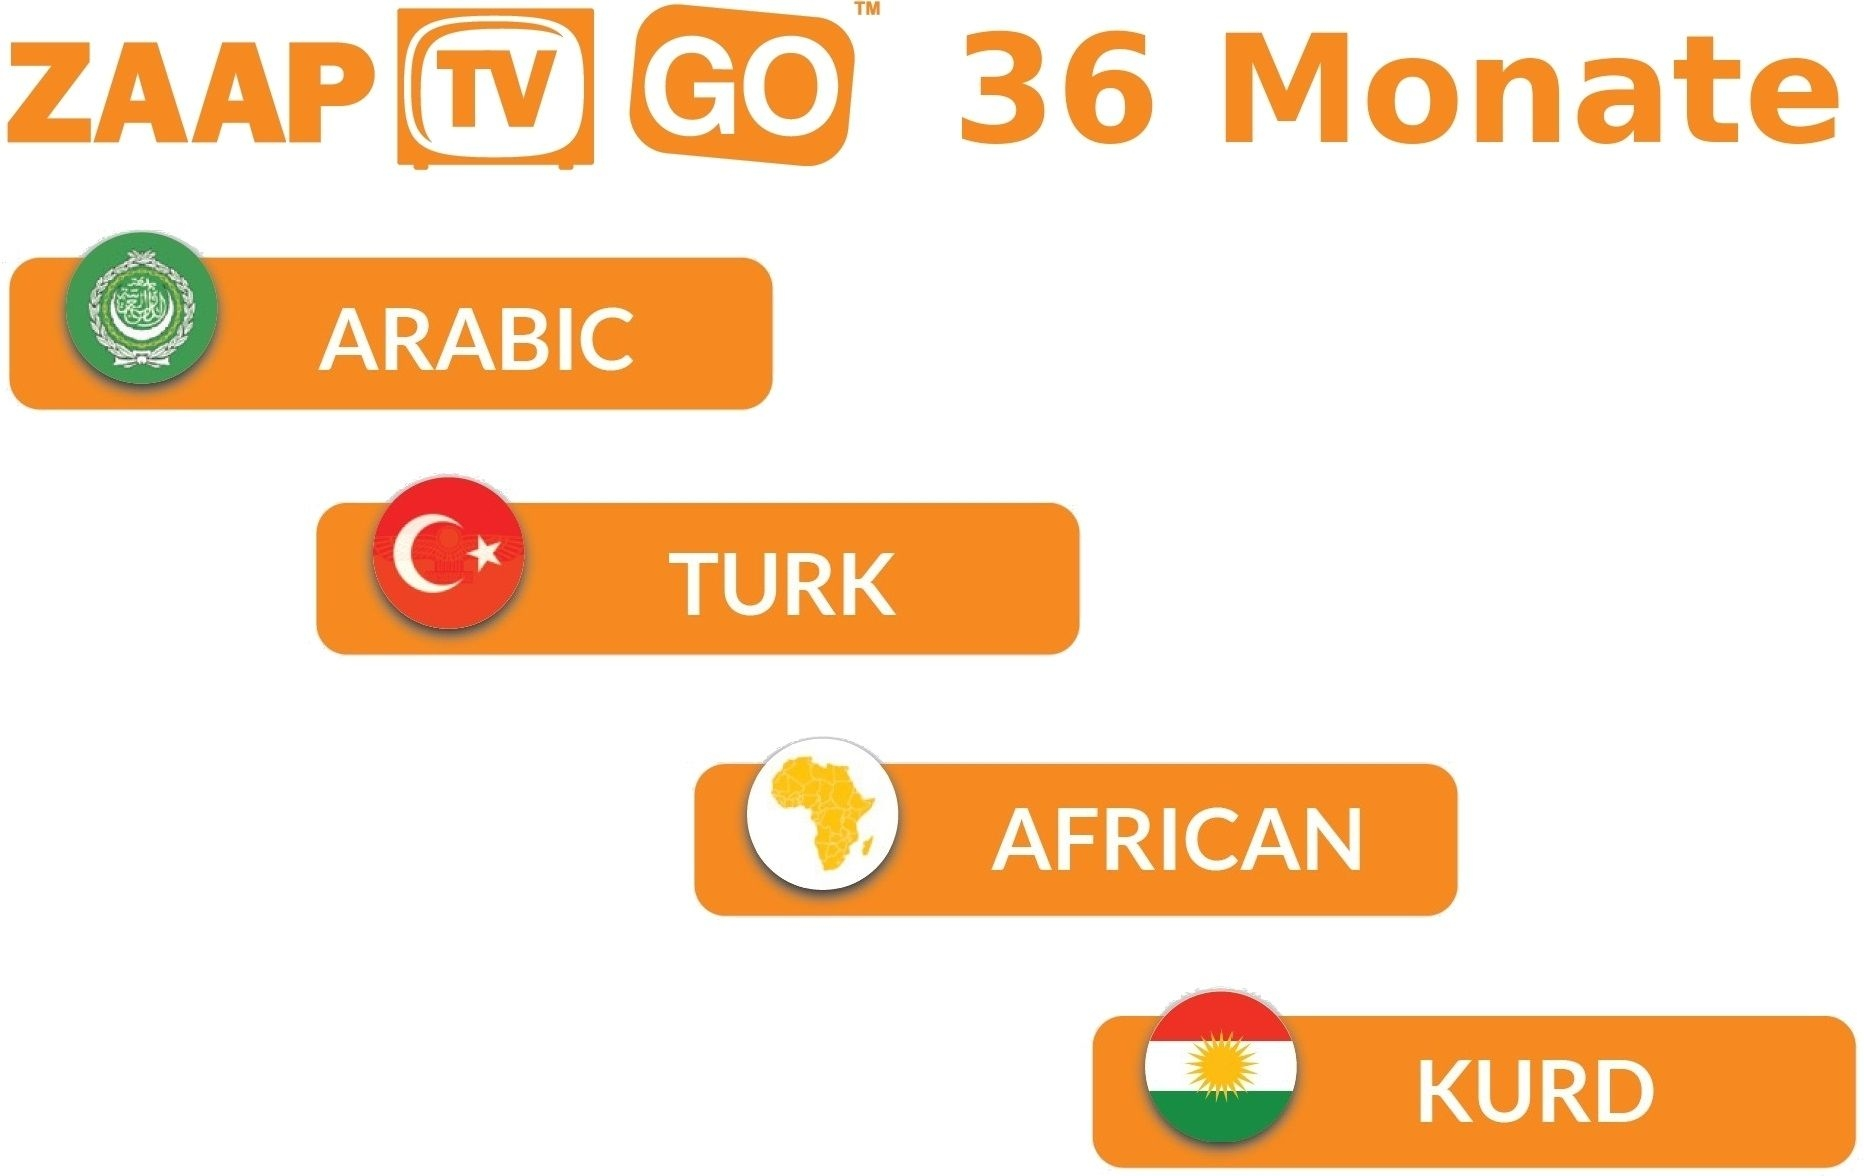 ZaapTV HD609N STB IPTV Receiver incl. 3 years ZAAPTV GO (arabisch/türkisch)